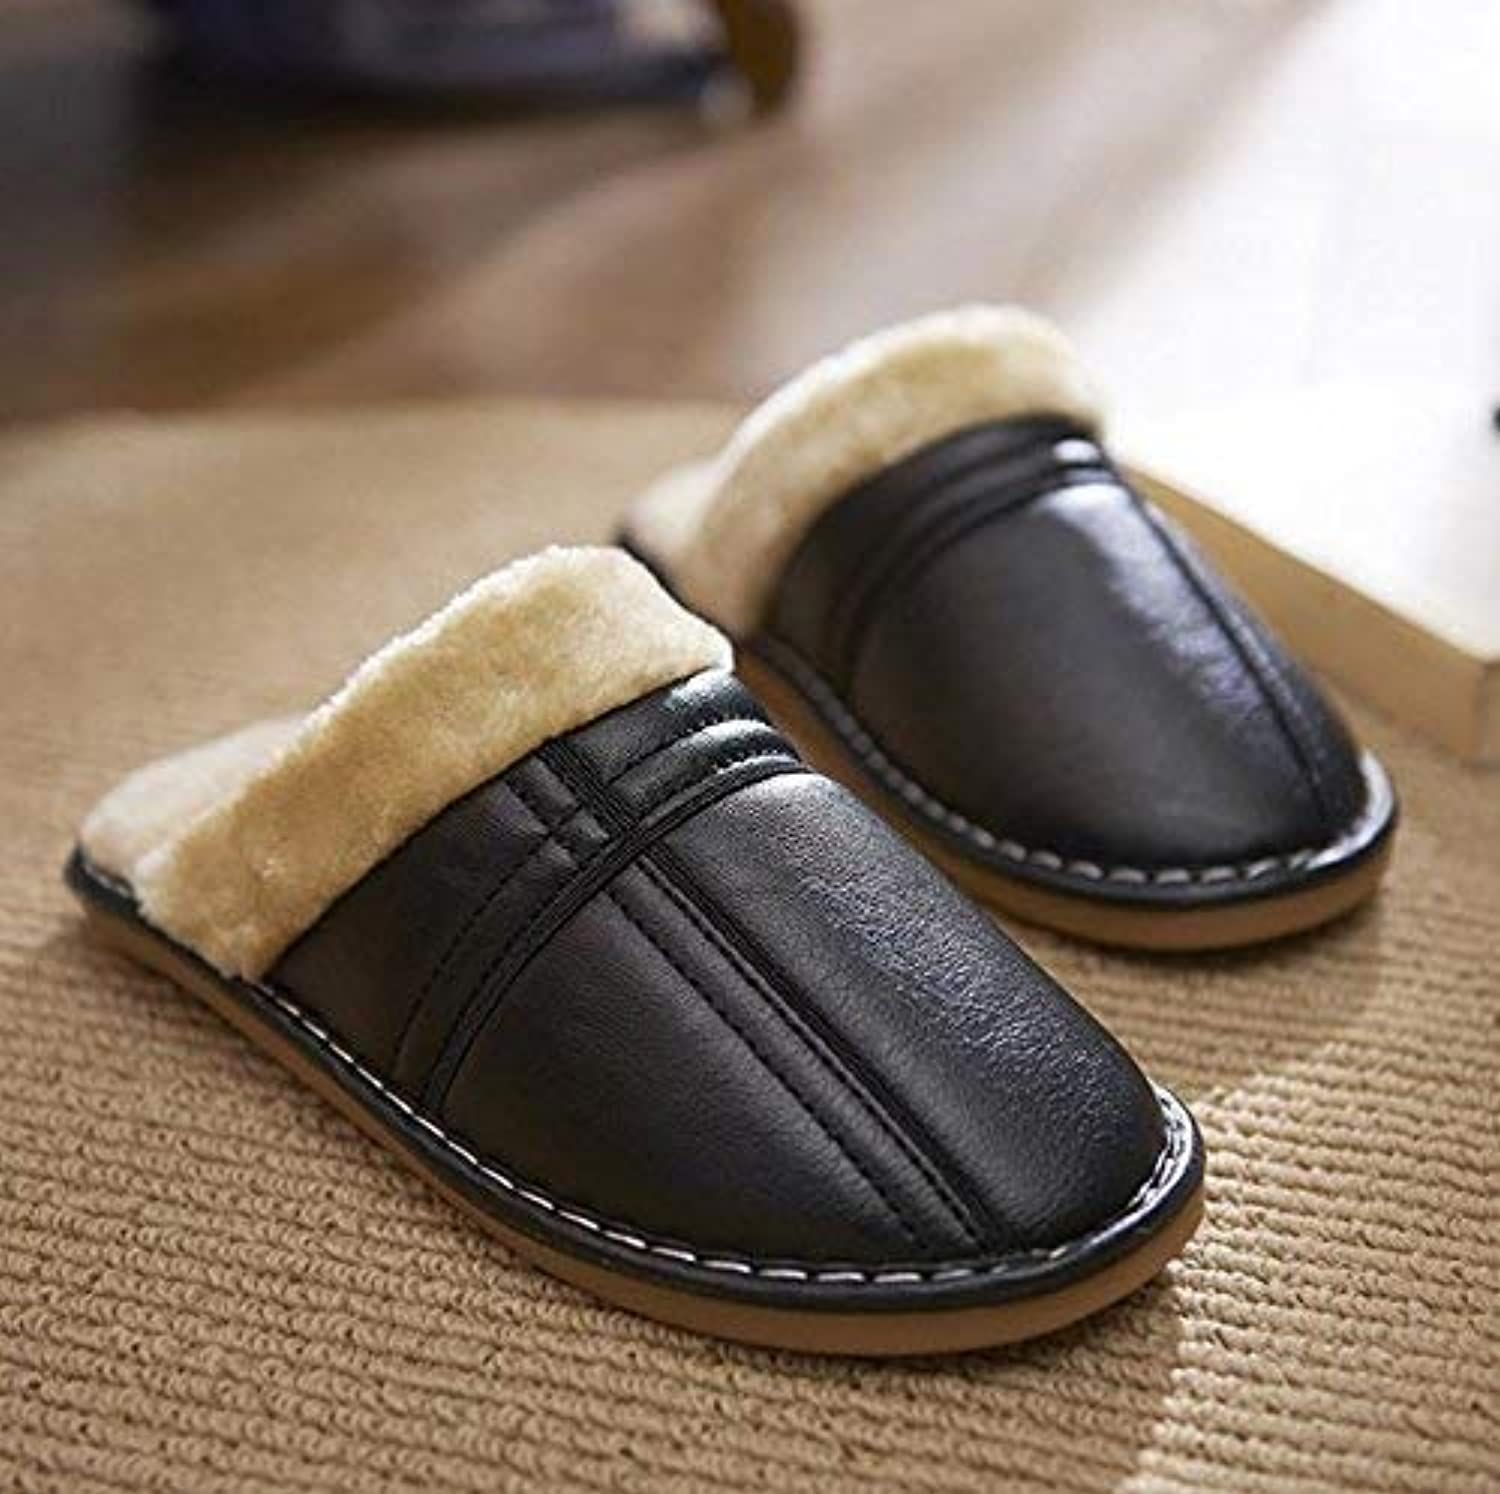 Men 's Home Leather Slippers Indoor Keep Warm Casual Slippers Black Large Soild color Personality Quality for Men